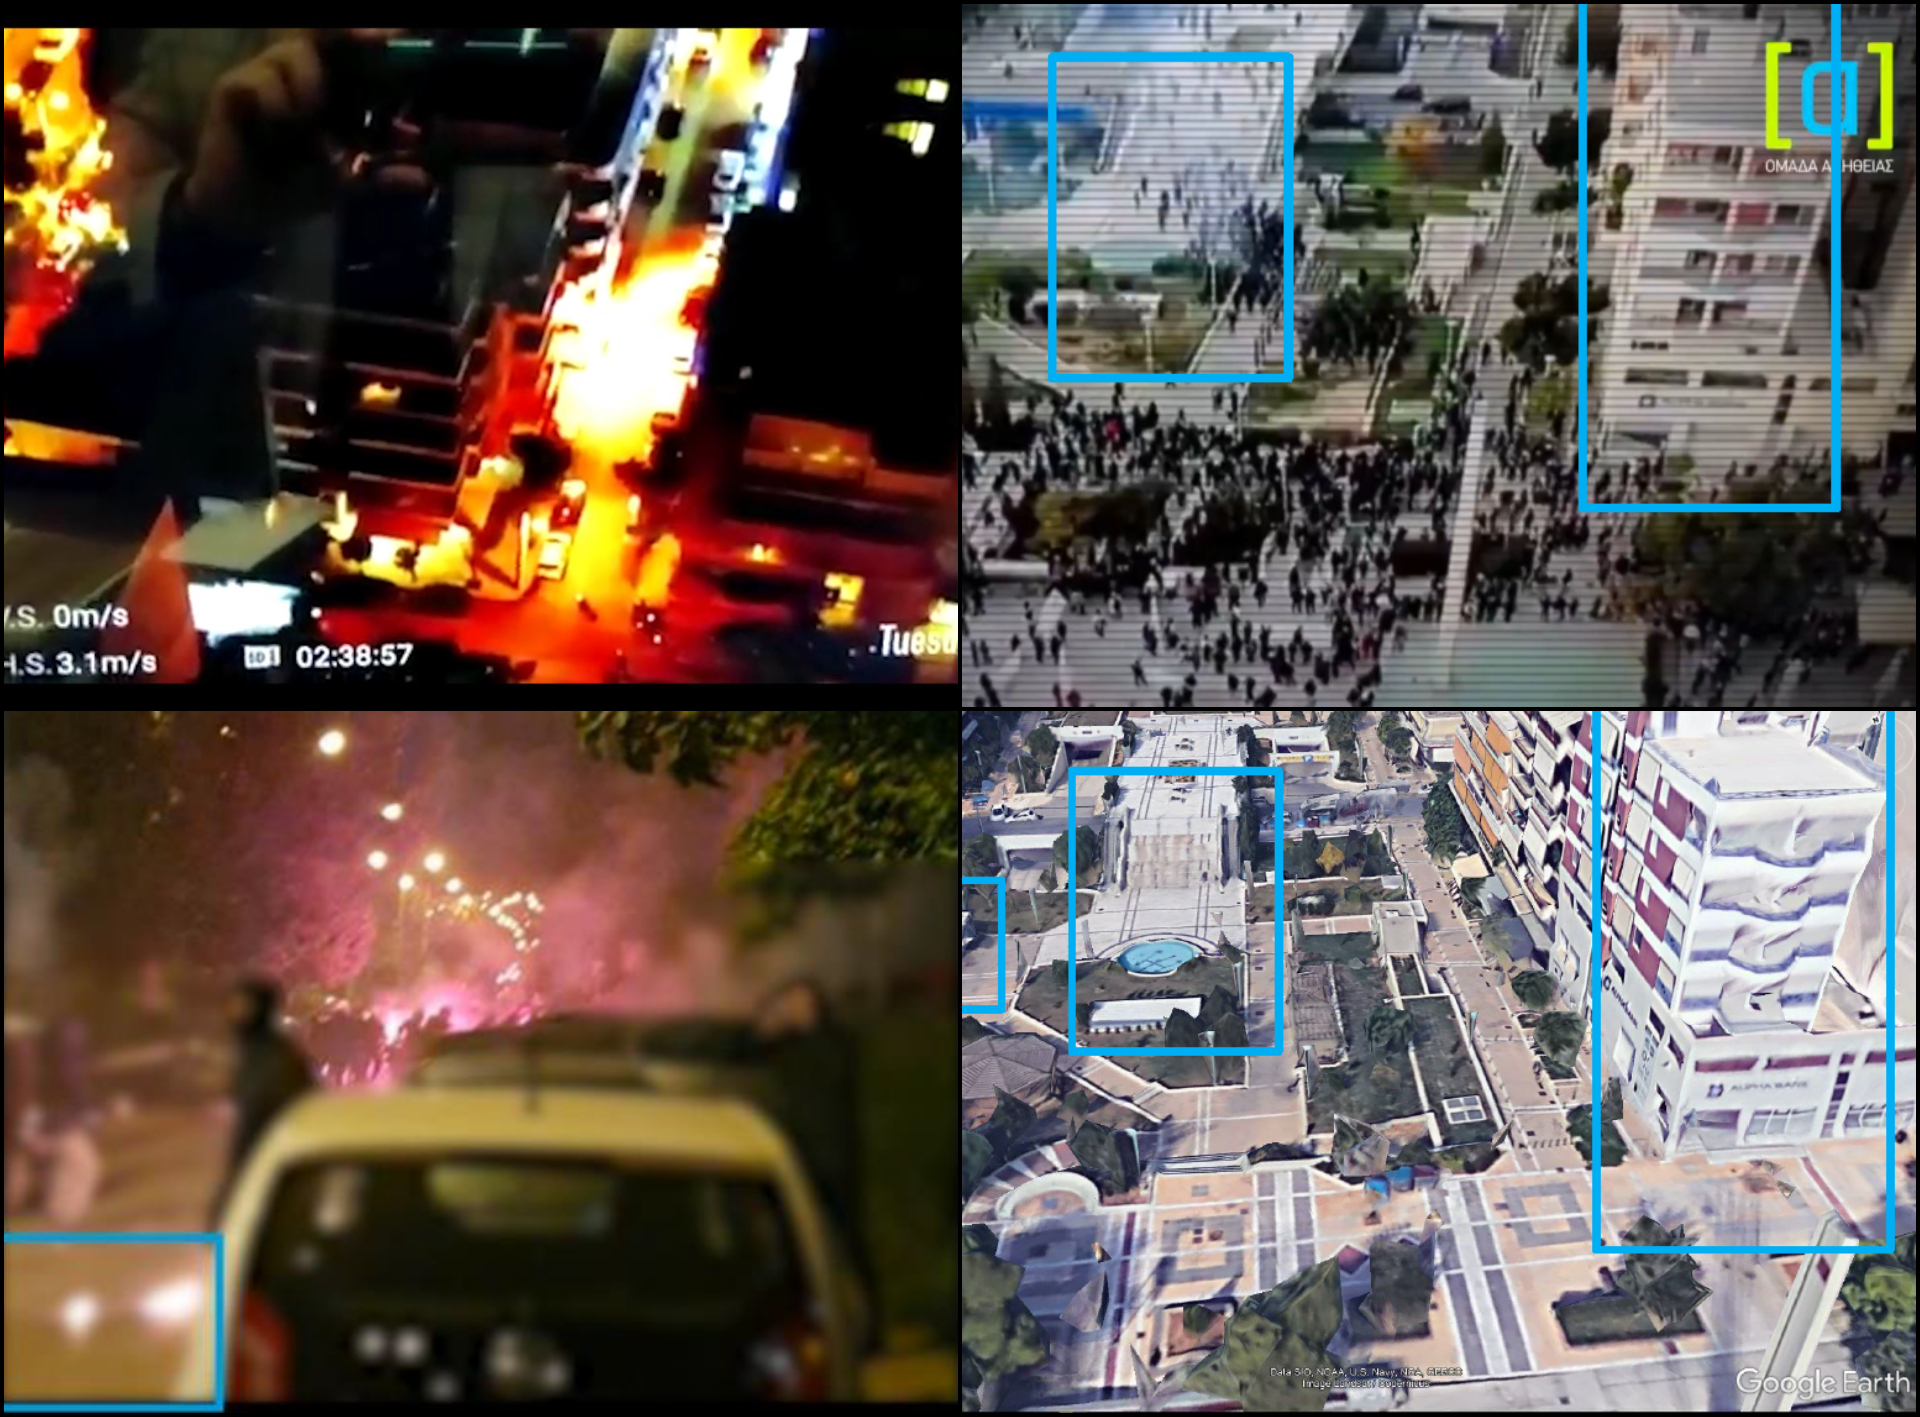 Police abuse in Greece: Disinfaux Collective report examines rogue petrol bomb video and reveals possible police ties to shady pro-government group